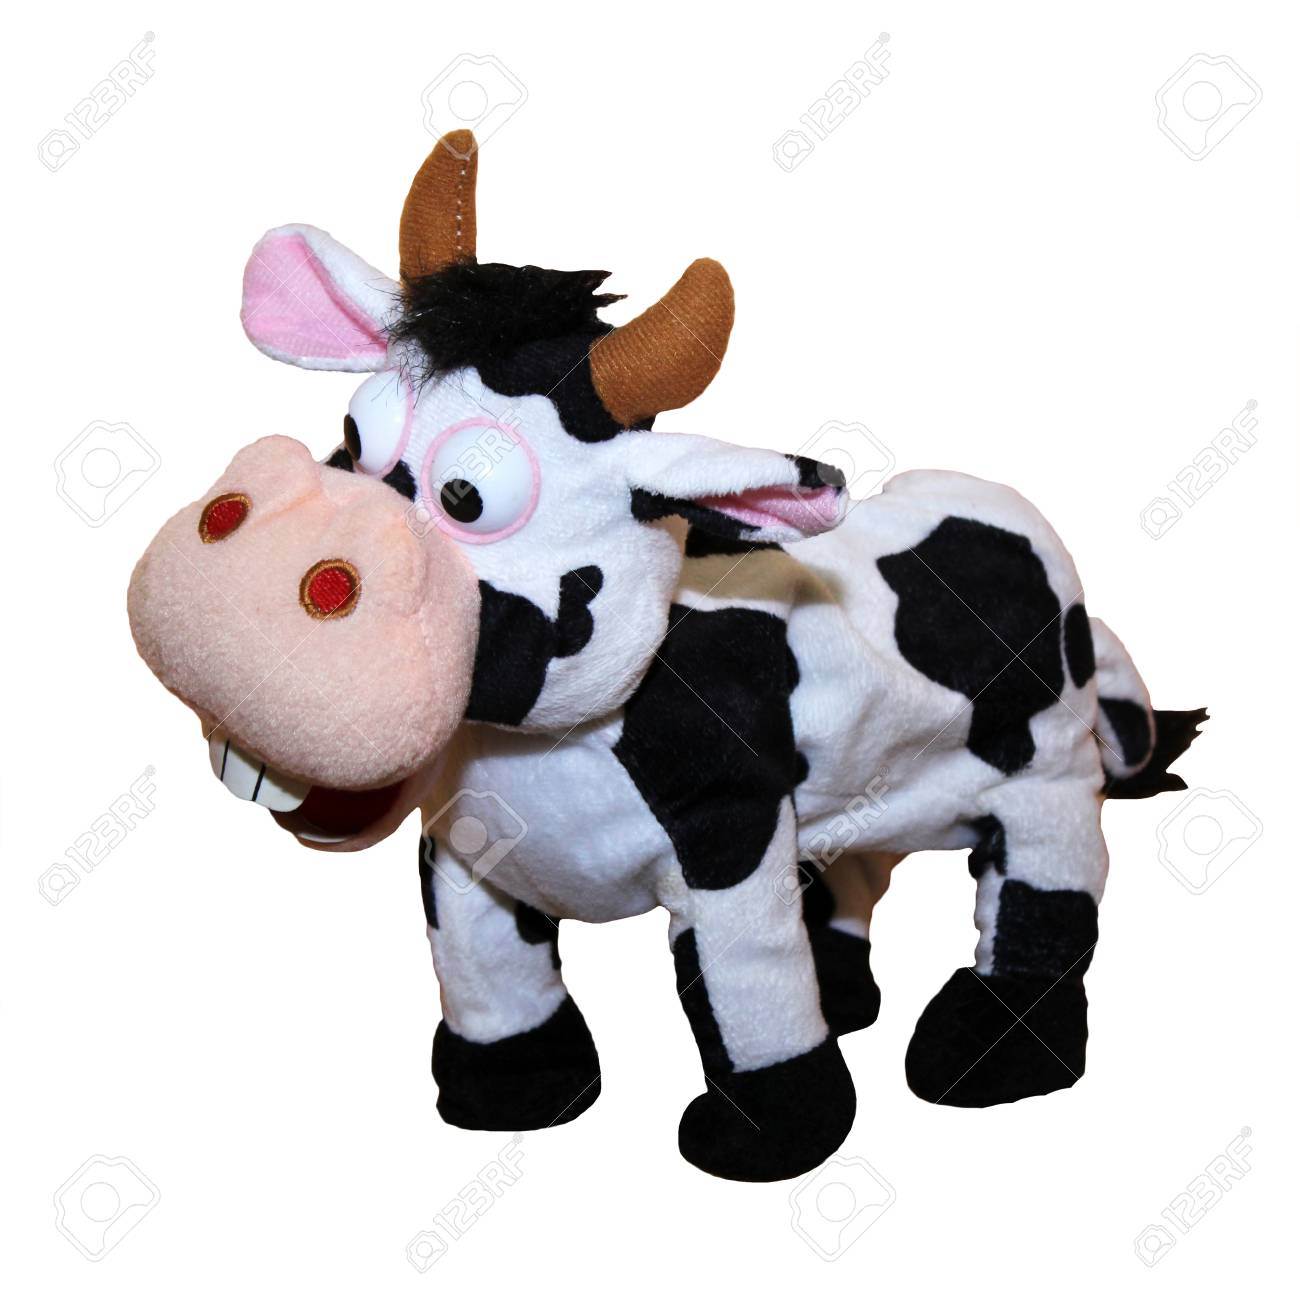 Small Black And White Toy Cow Against White Background Crazy Stock